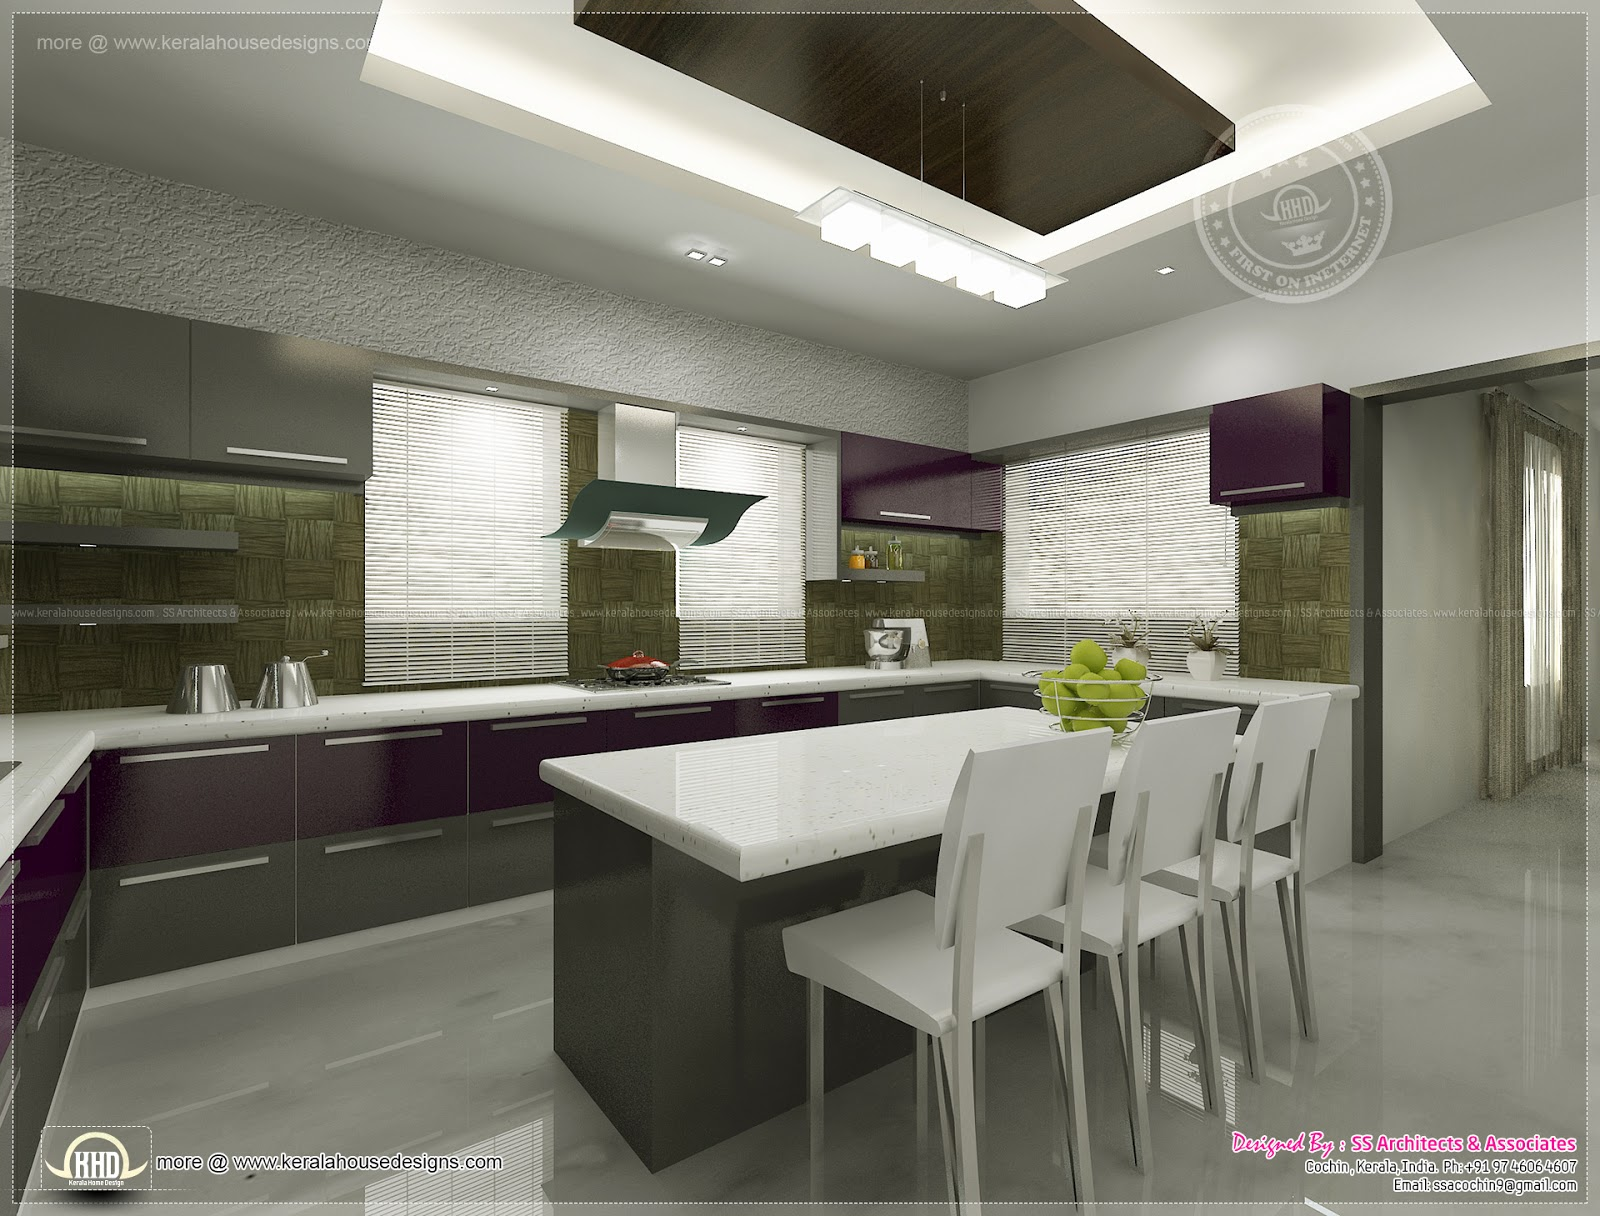 Kitchen interior views by SS Architects